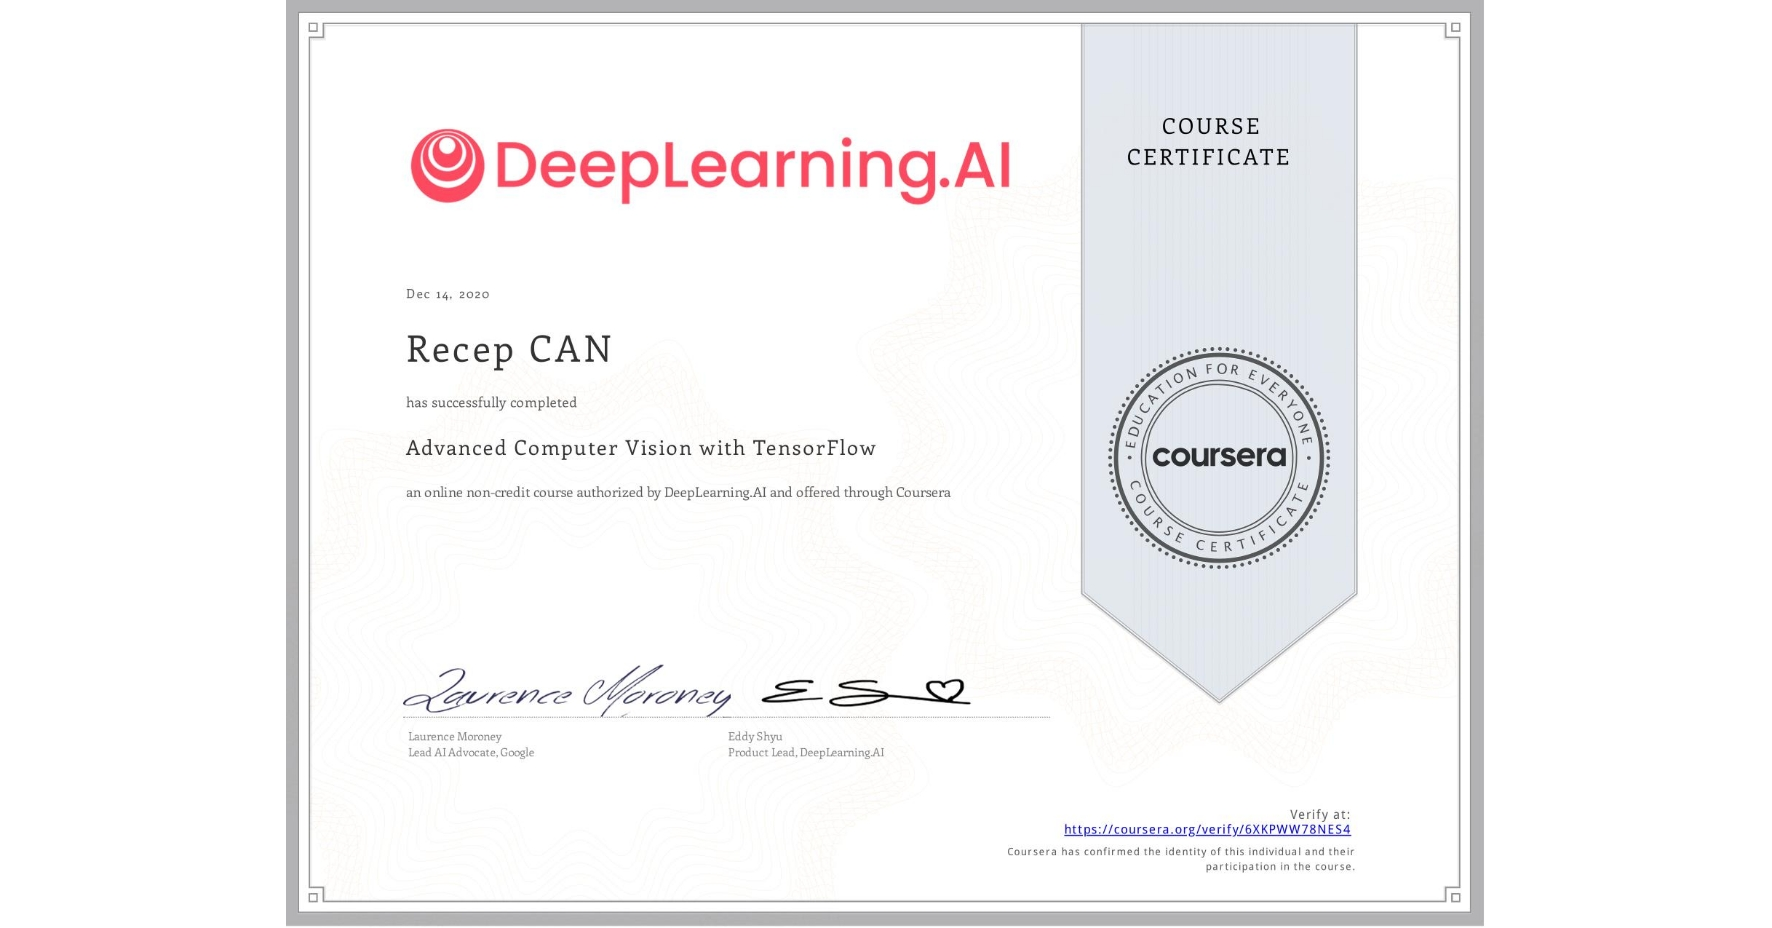 View certificate for Recep CAN, Advanced Computer Vision with TensorFlow, an online non-credit course authorized by DeepLearning.AI and offered through Coursera